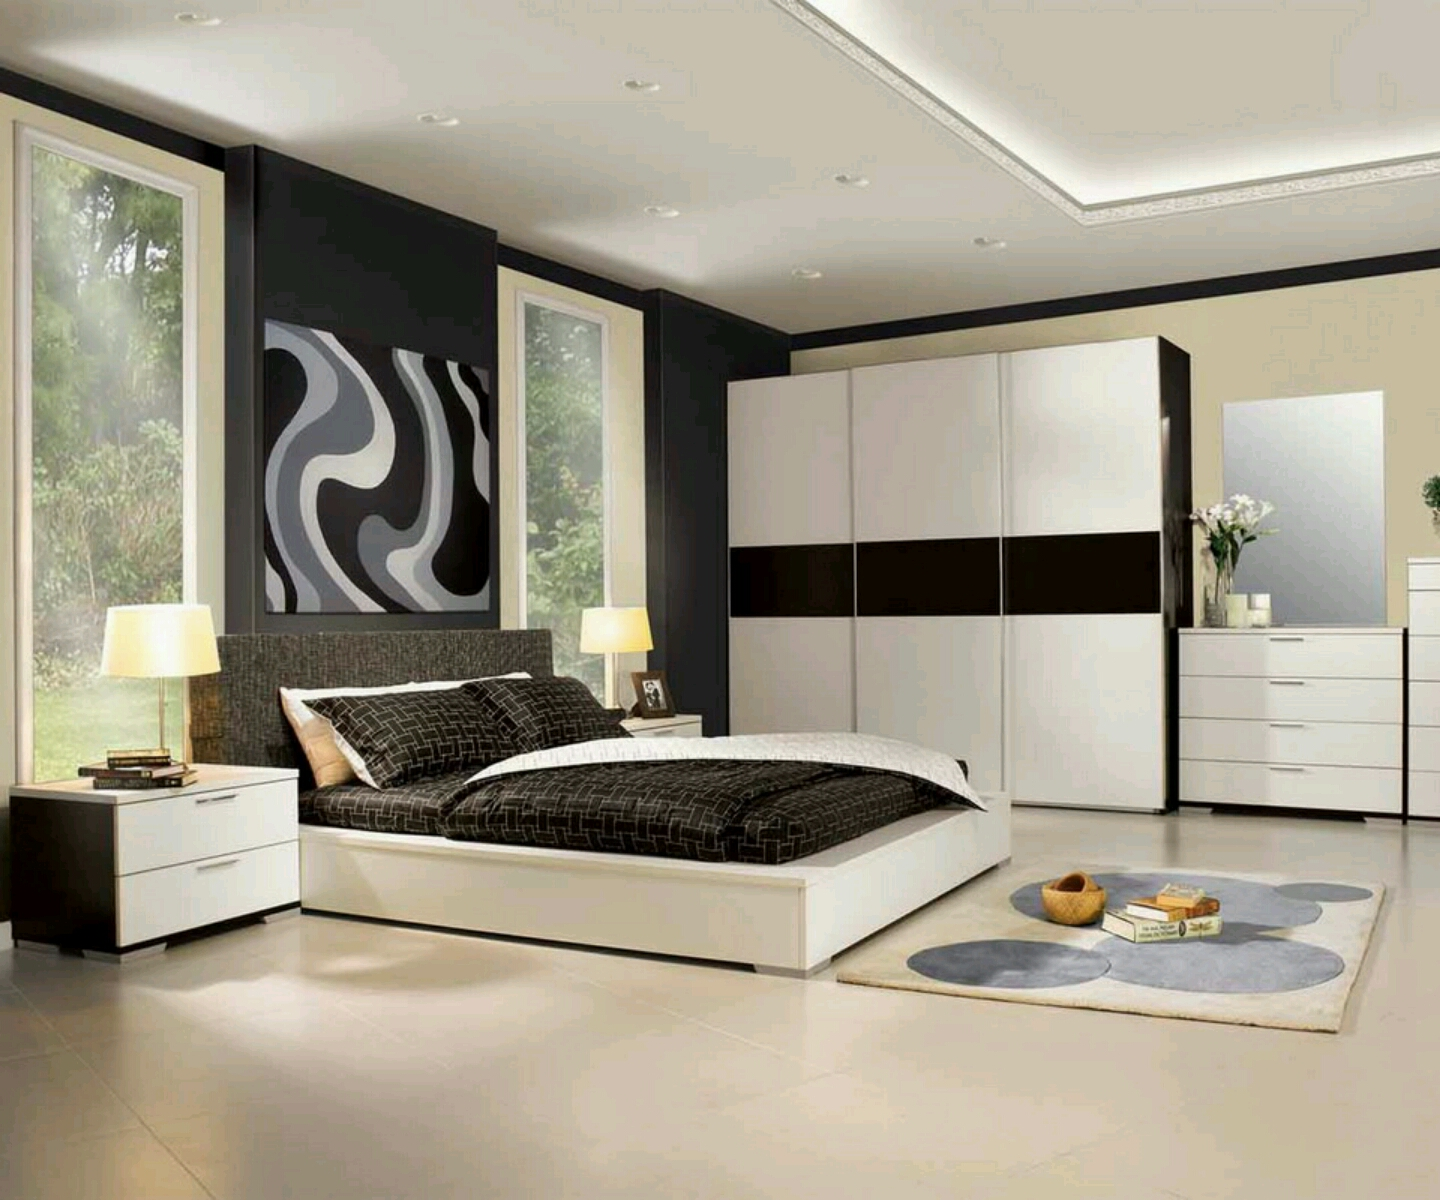 Modern luxury bedroom furniture designs ideas vintage romantic home - Furniture design for bedroom ...